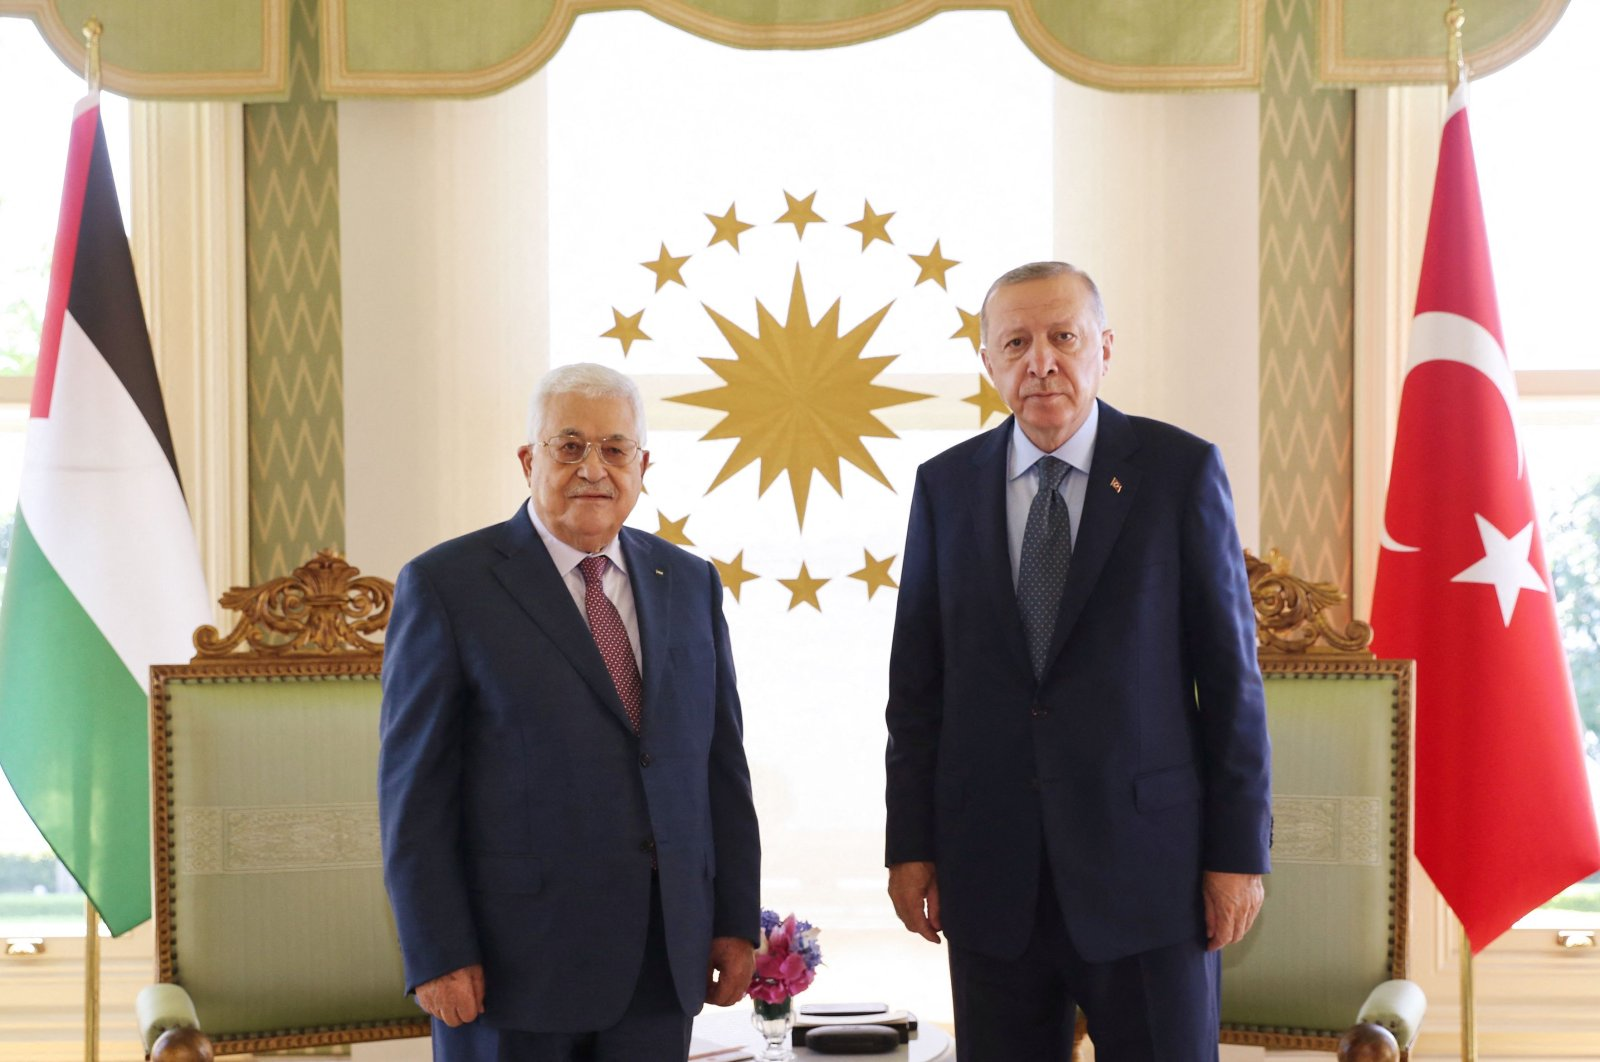 A handout picture taken and released by the Turkish Presidential press office on July 10, 2021 shows Turkish President Recep Tayyip Erdoğan (R) meeting with Palestinian President Mahmoud Abbas (L) in Istanbul. (Turkish Presidency via AFP)